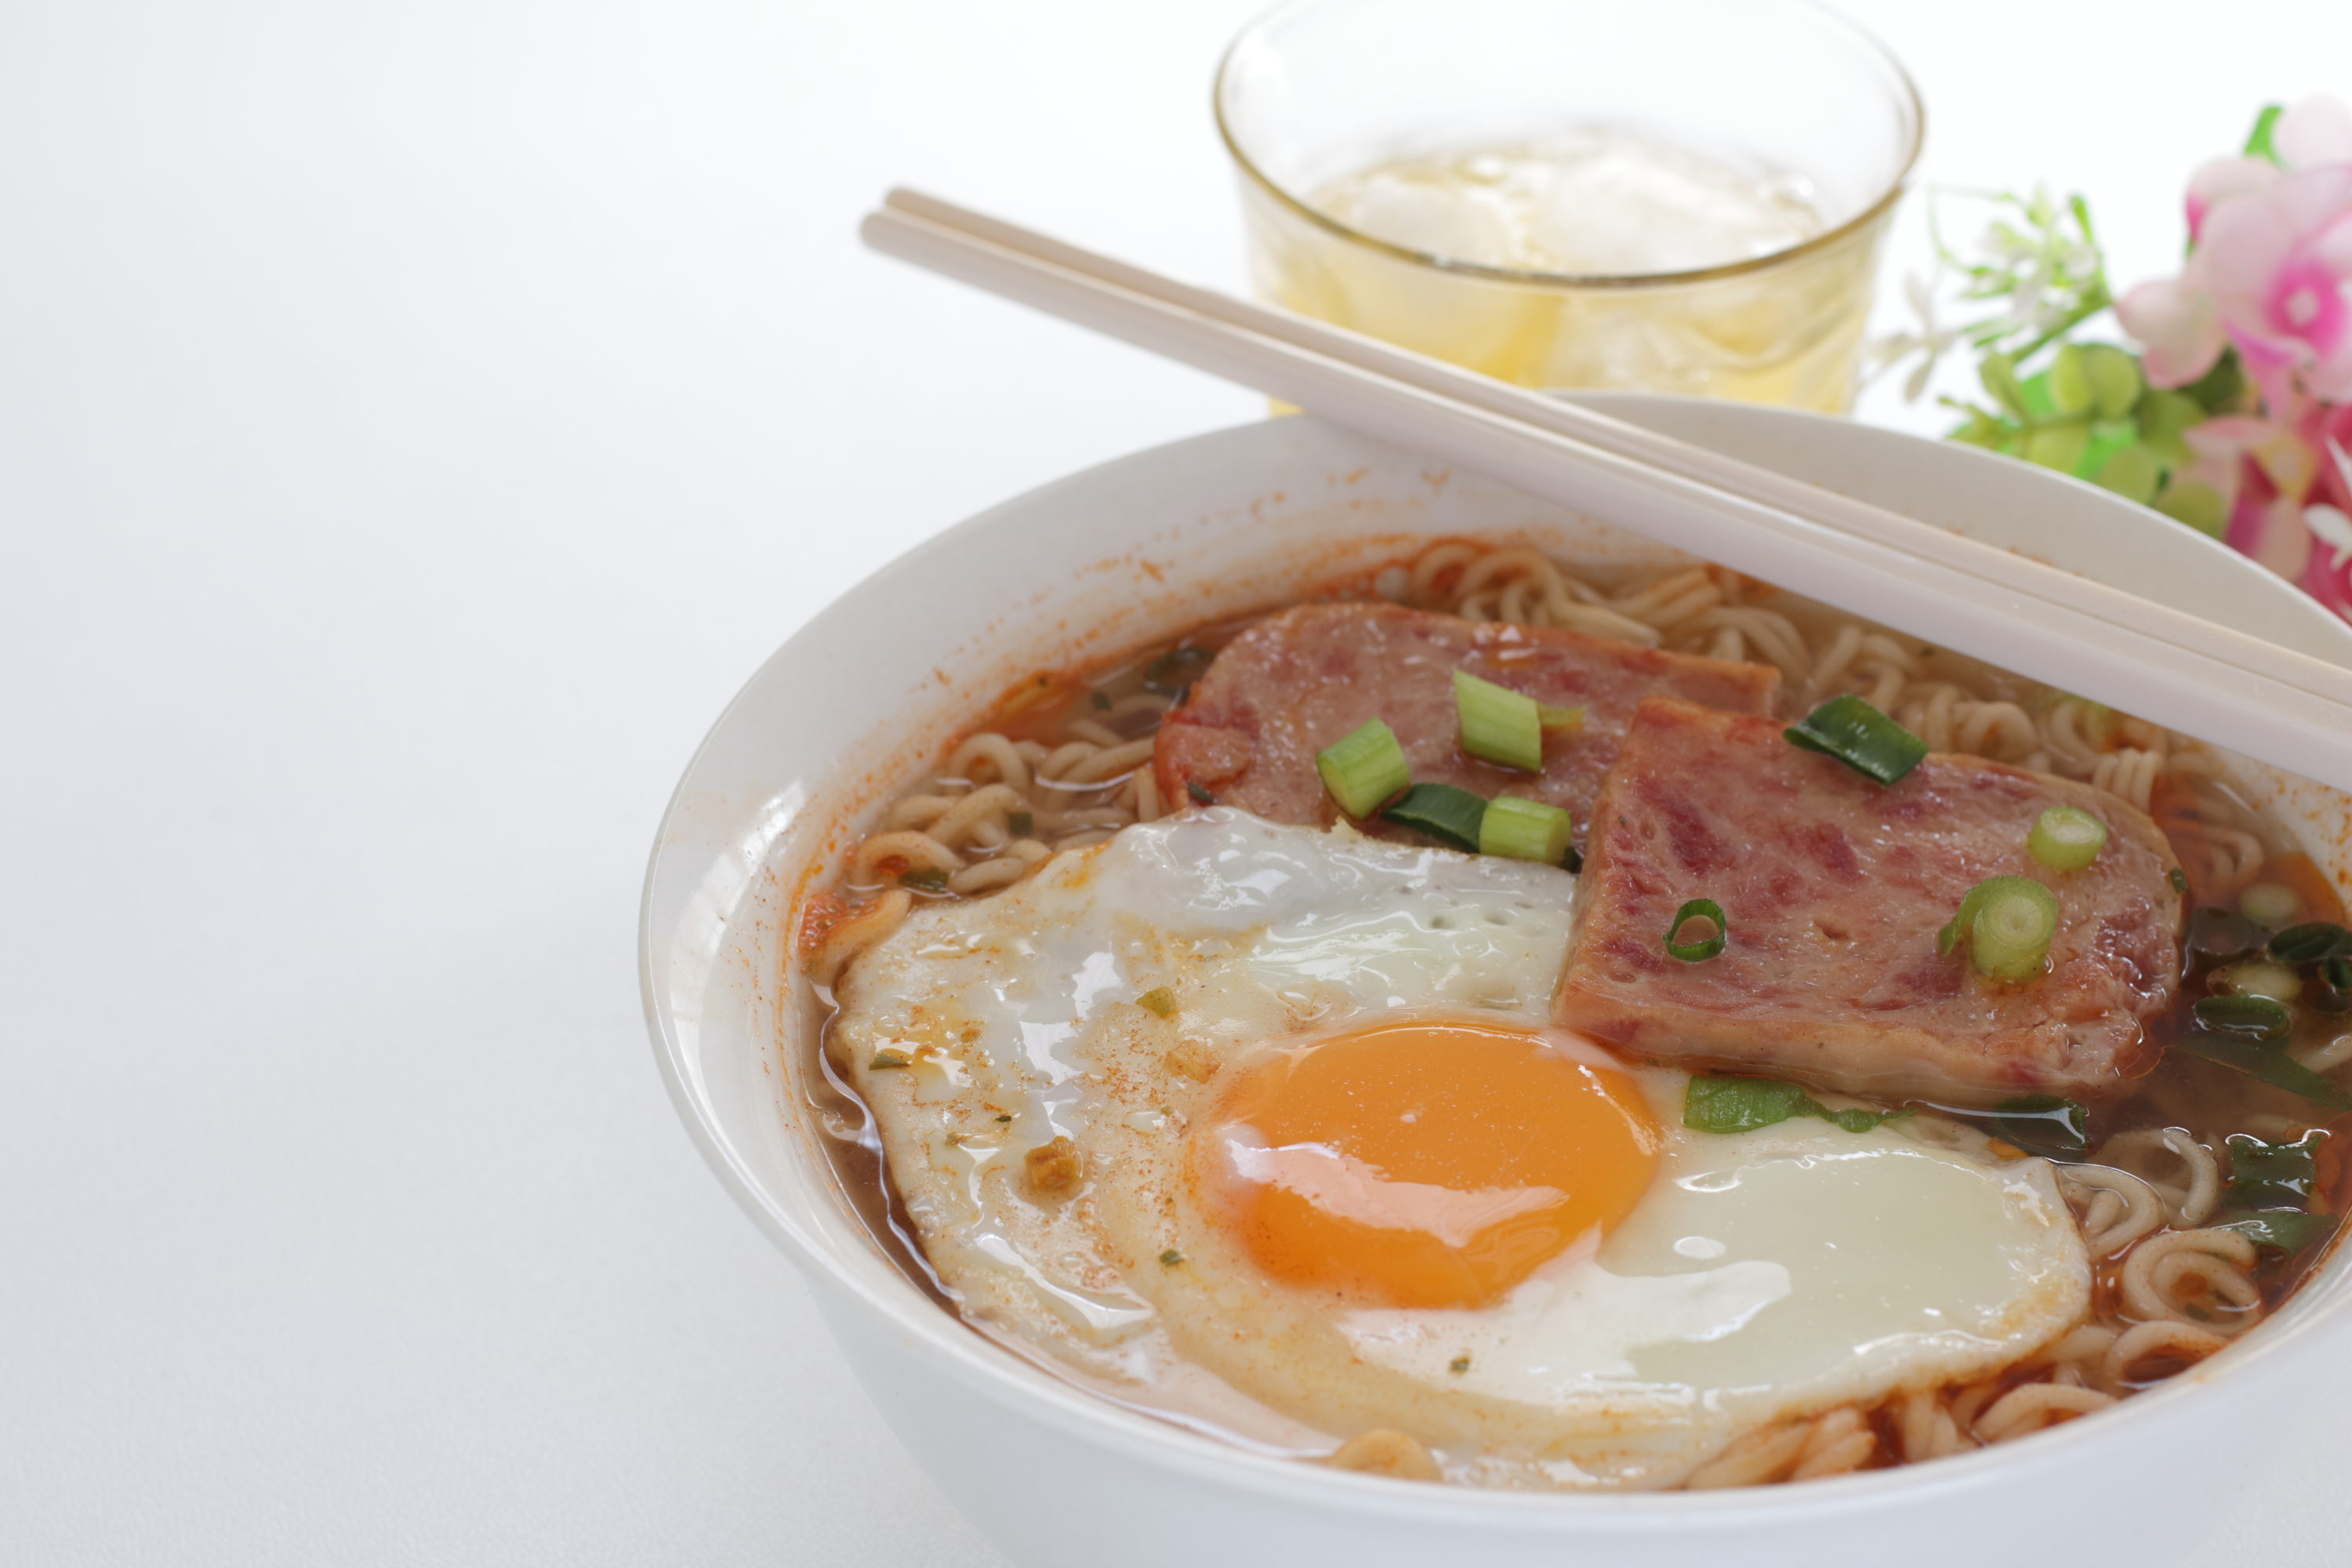 The best places in Hong Kong to grab breakfast